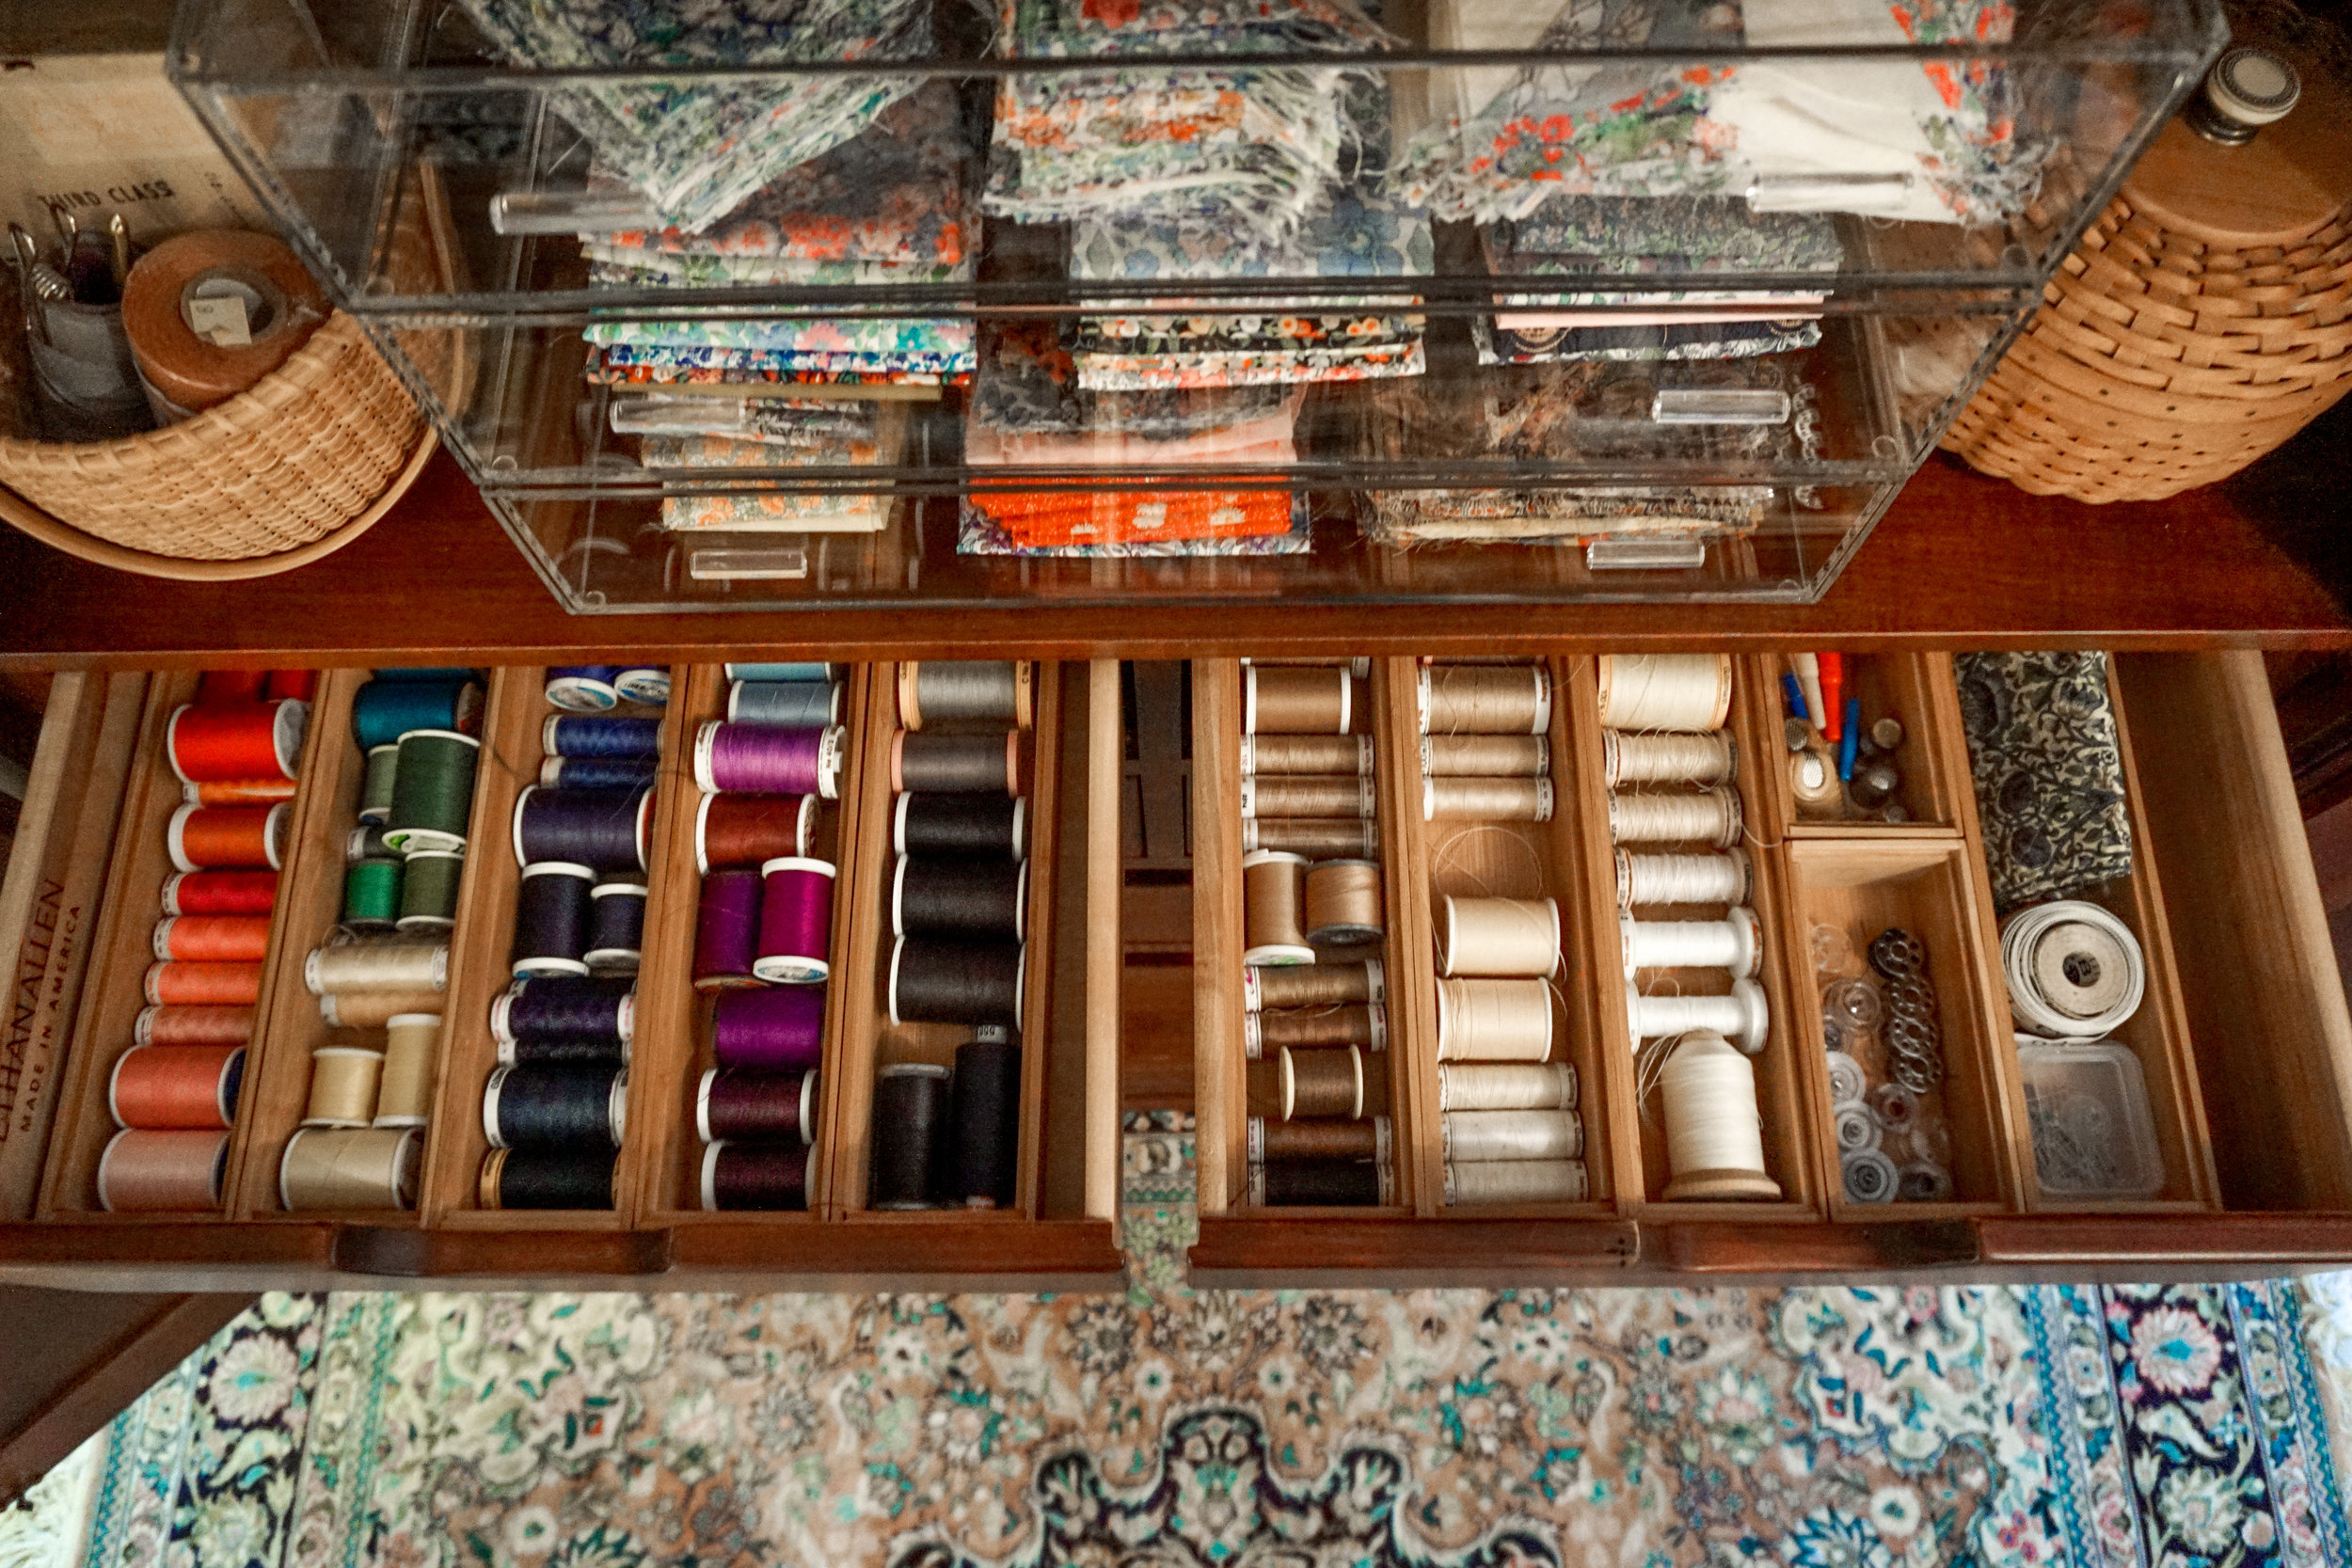 House of Turk | Thread Organization, Sewing Room Organization